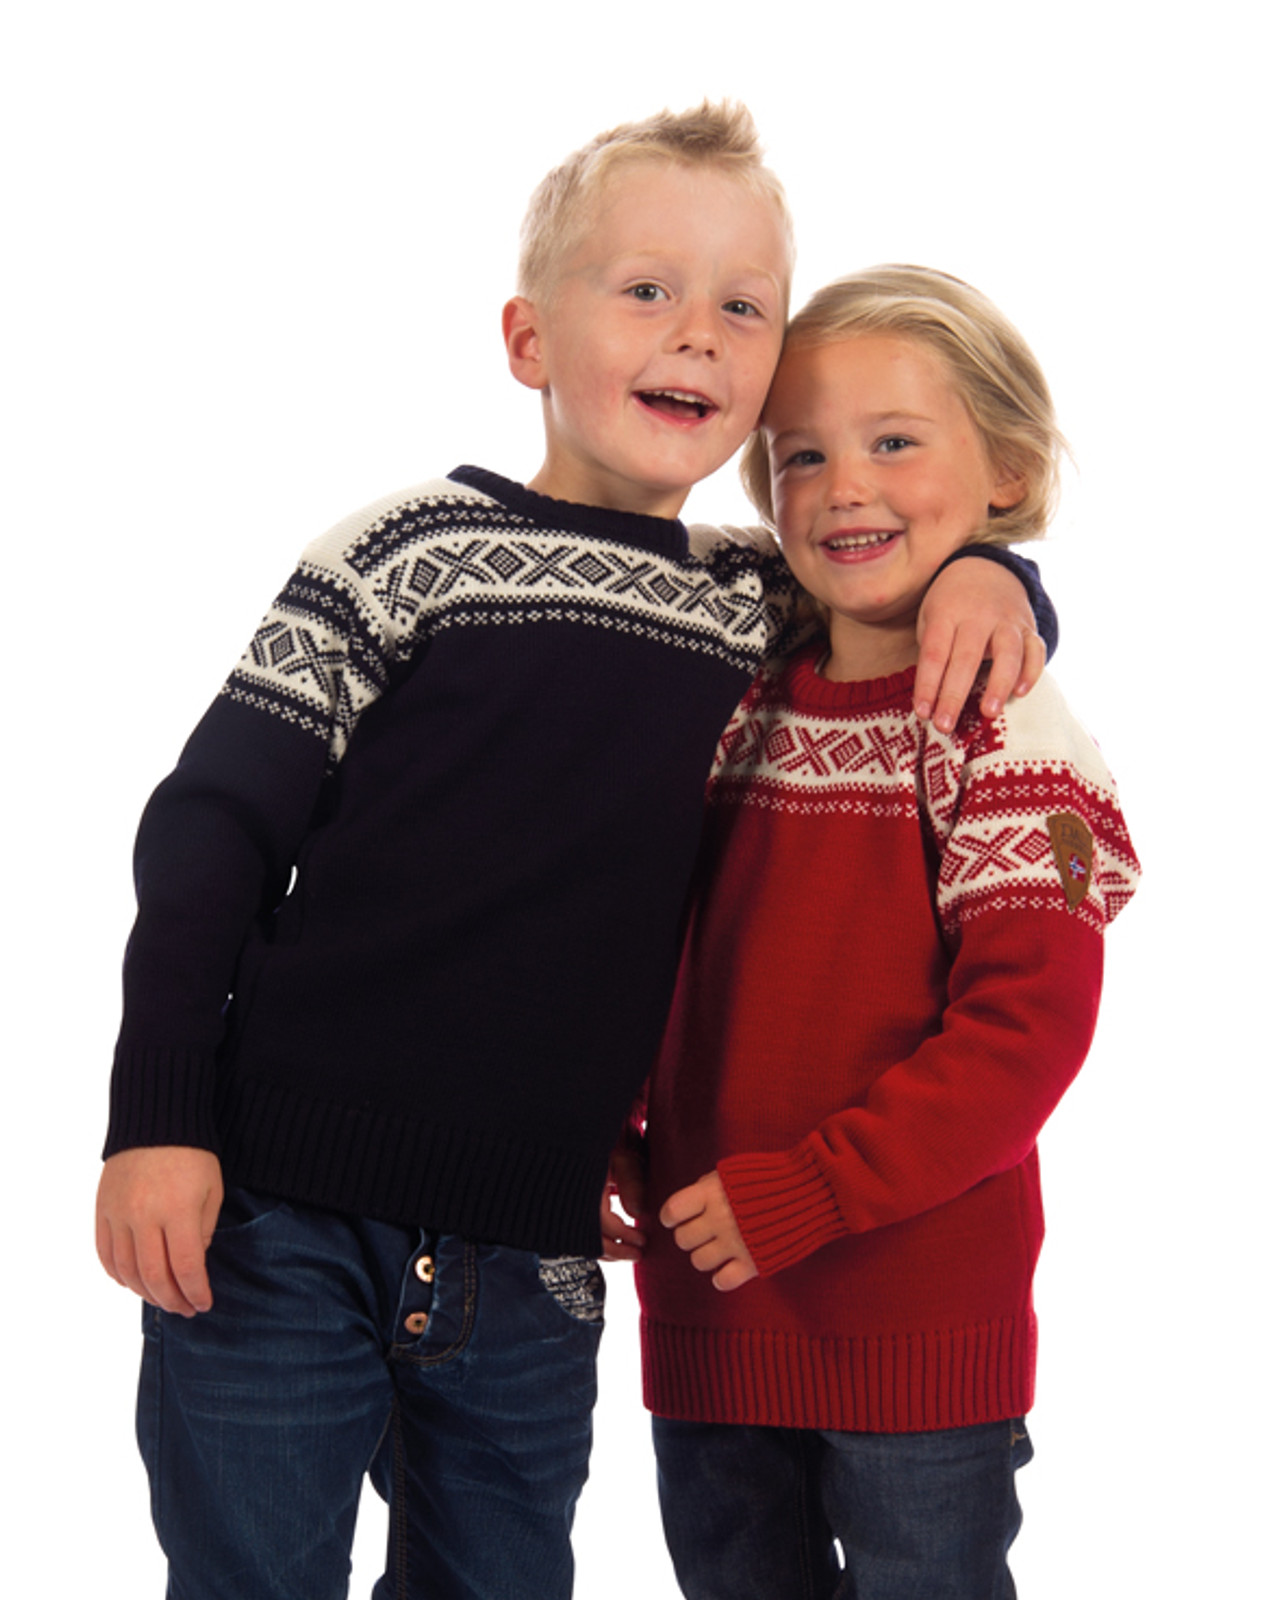 Children showing the other different colors of the Dale of Norway Cortina kids sweater. The colors are Raspberry/Off White, 92991-B, and Navy/Off White, 92991-C